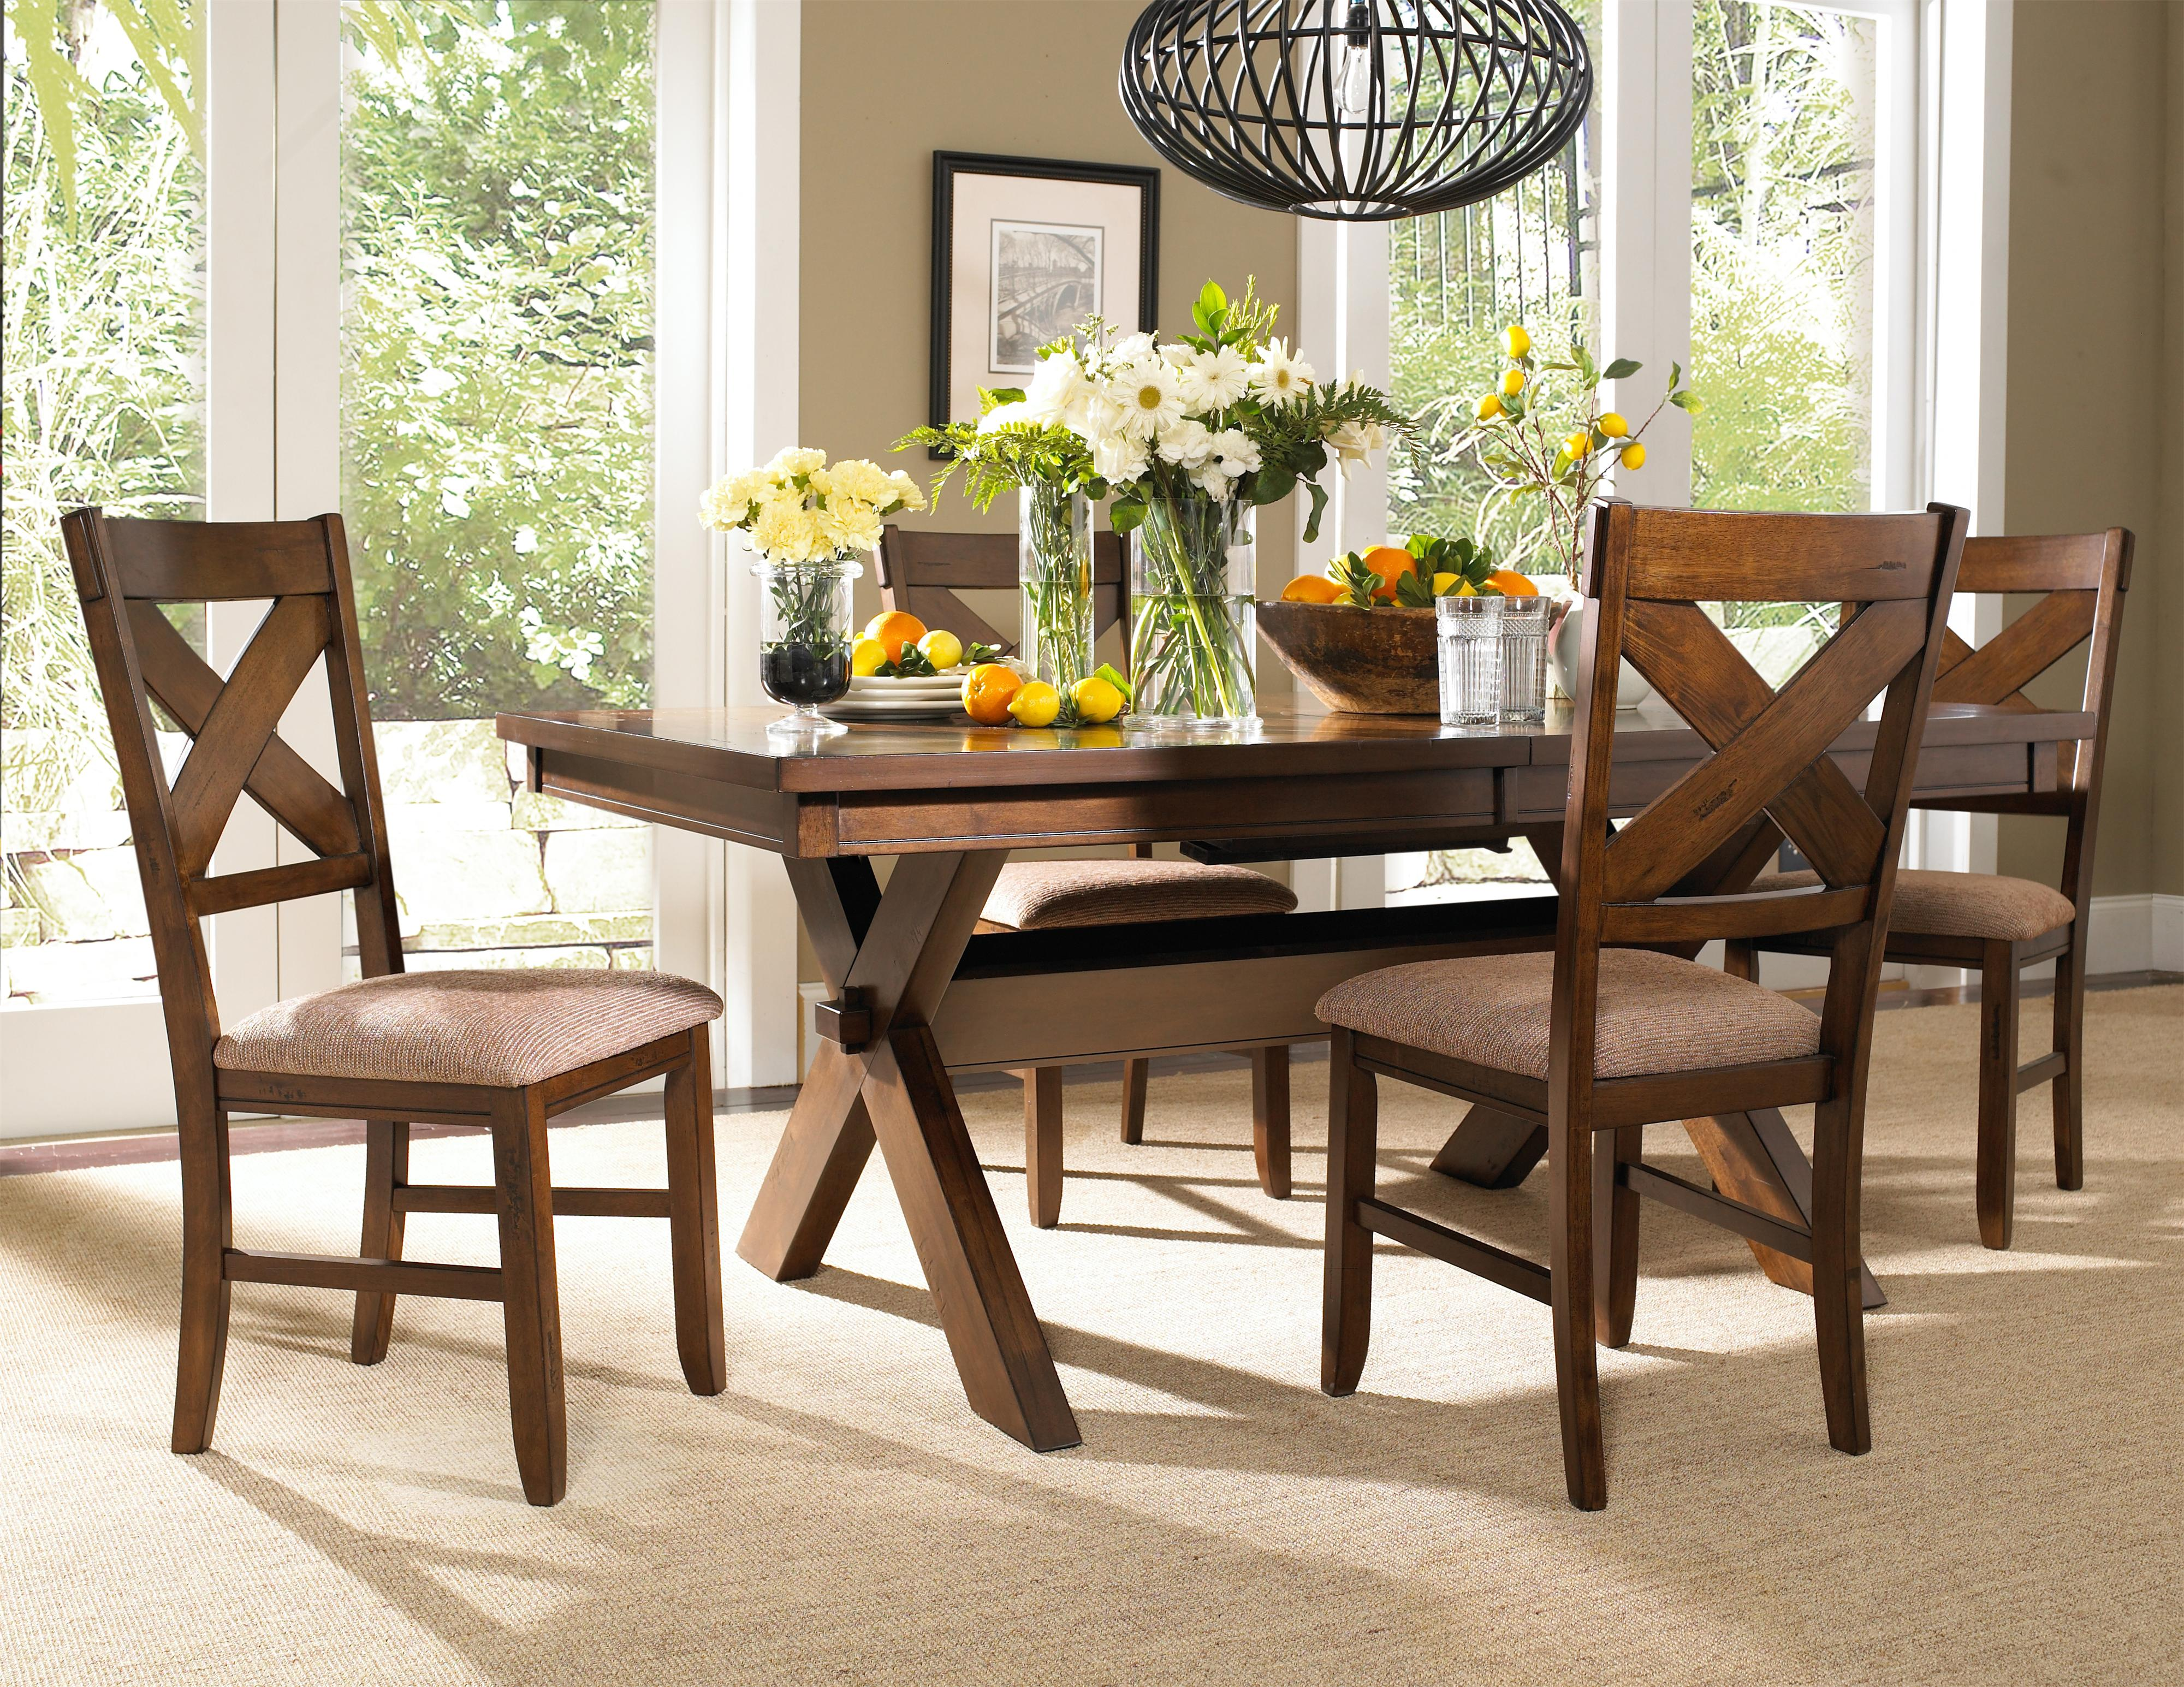 Powell Kraven Dark Hazelnut Dining Side Chair With Beige Upholstered Seat    Wayside Furniture   Dining Side Chairs